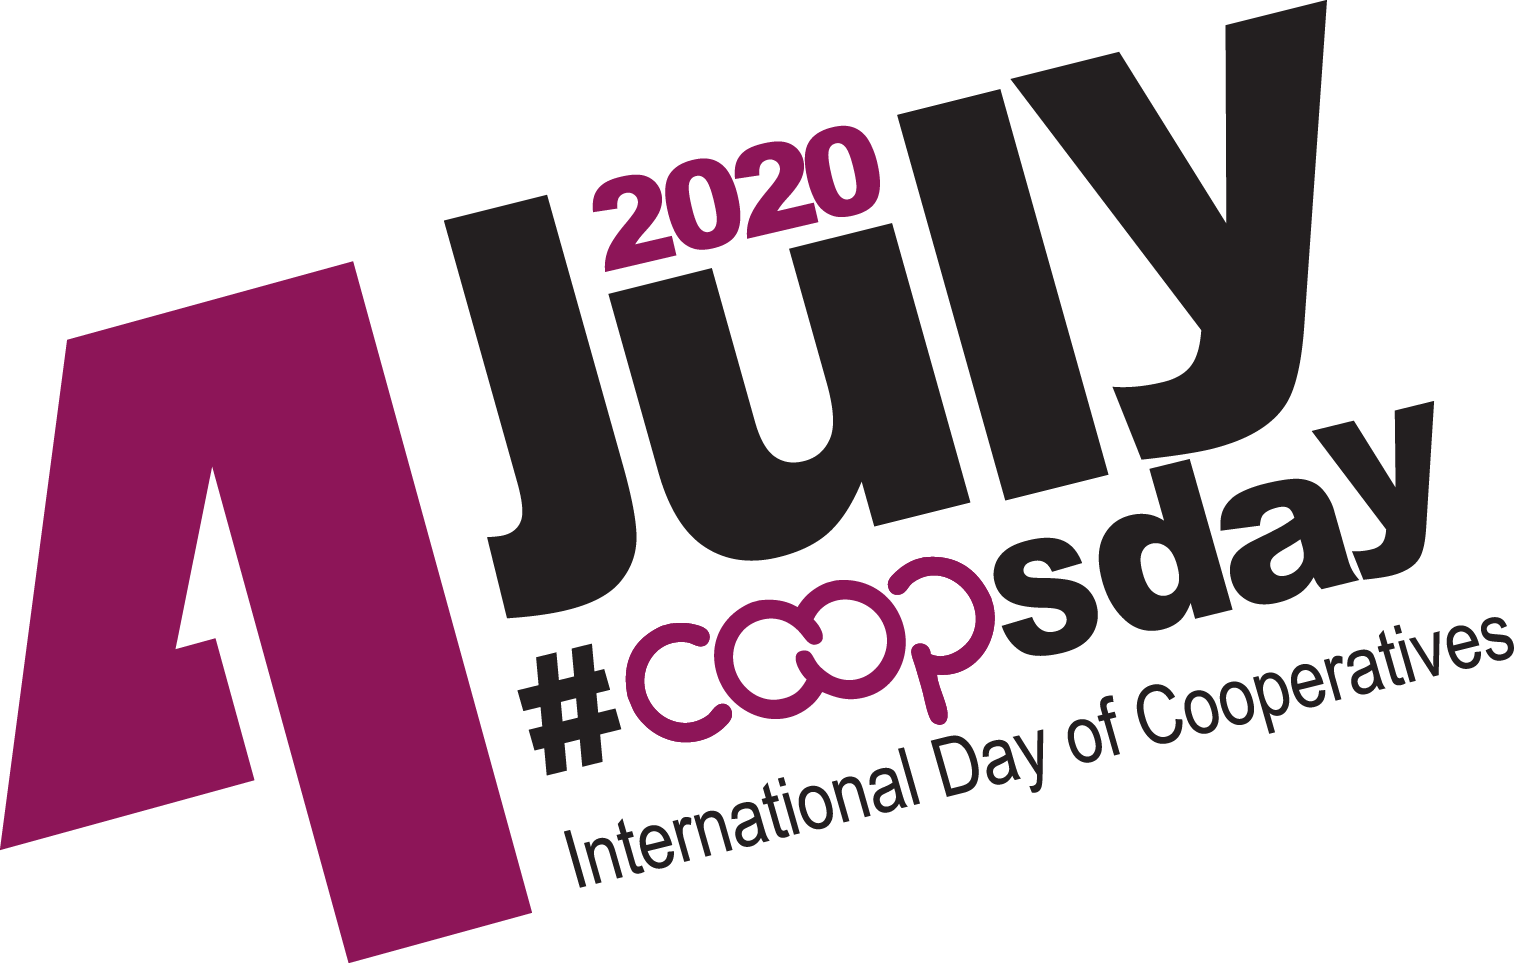 Co-ops Day 2020